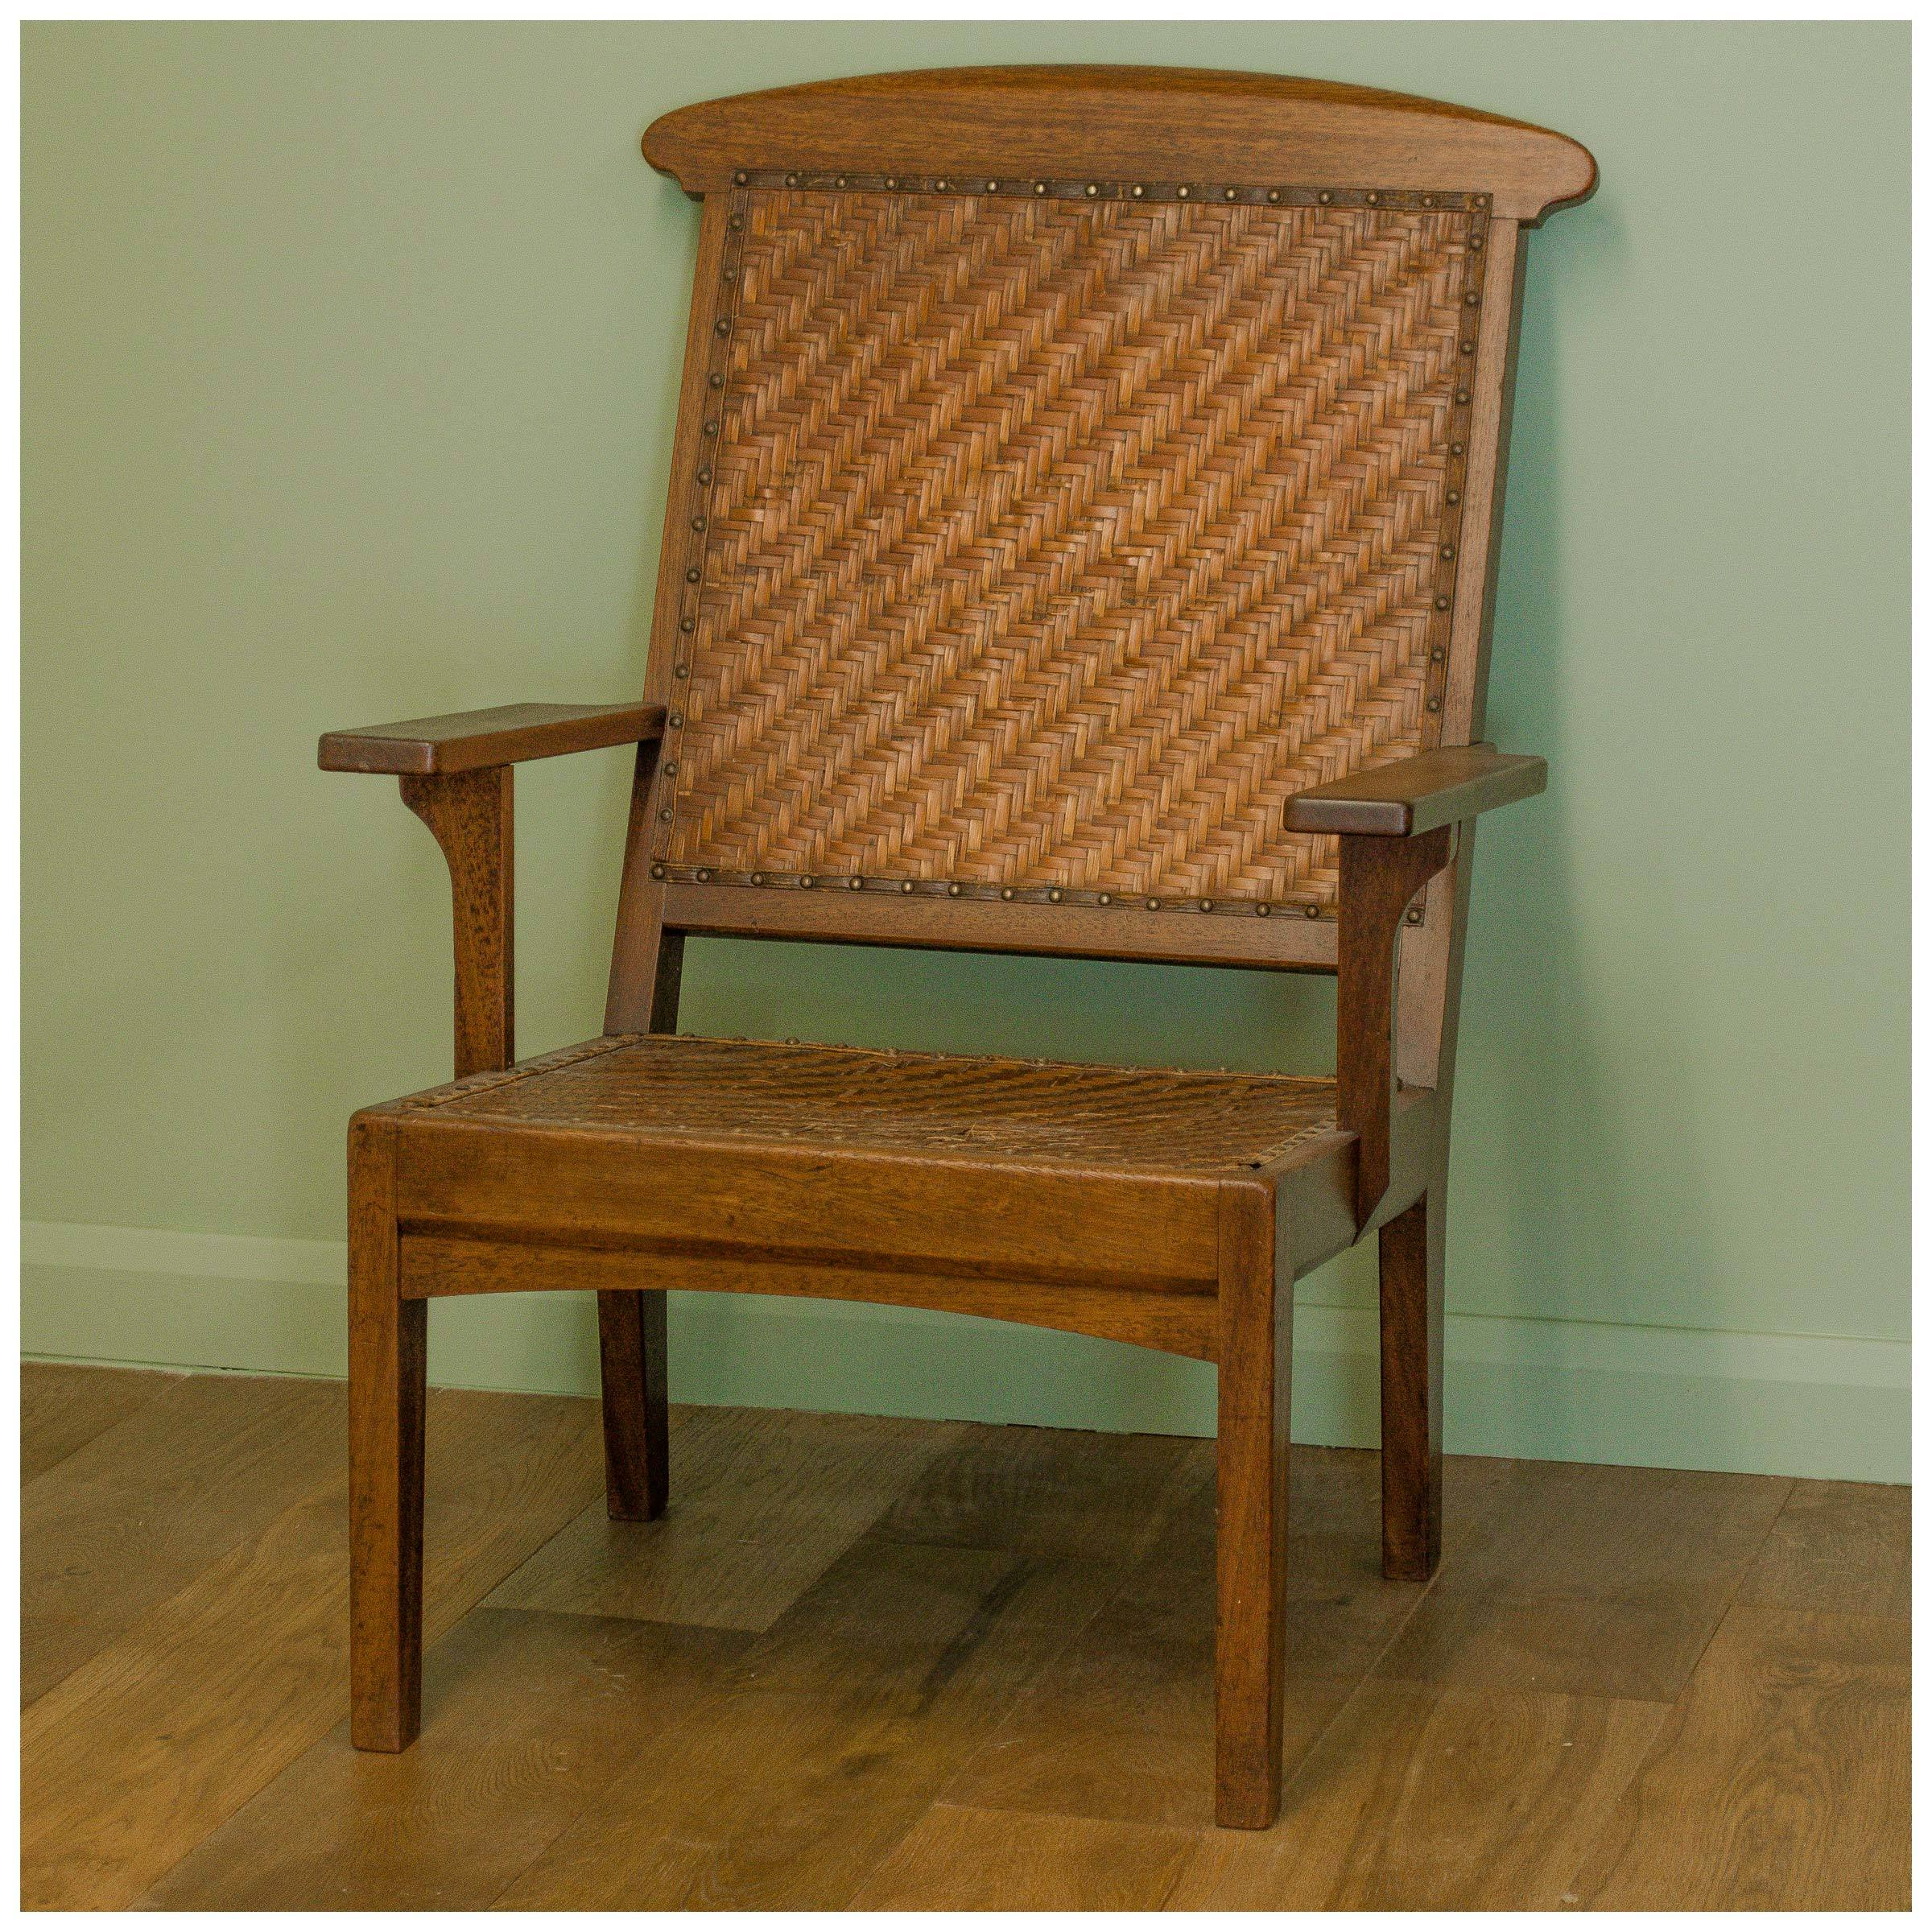 arts-crafts-mahogany-armchair-by-arthur-w-simpson-the-handicrafts-kendal-b0020151a.jpg